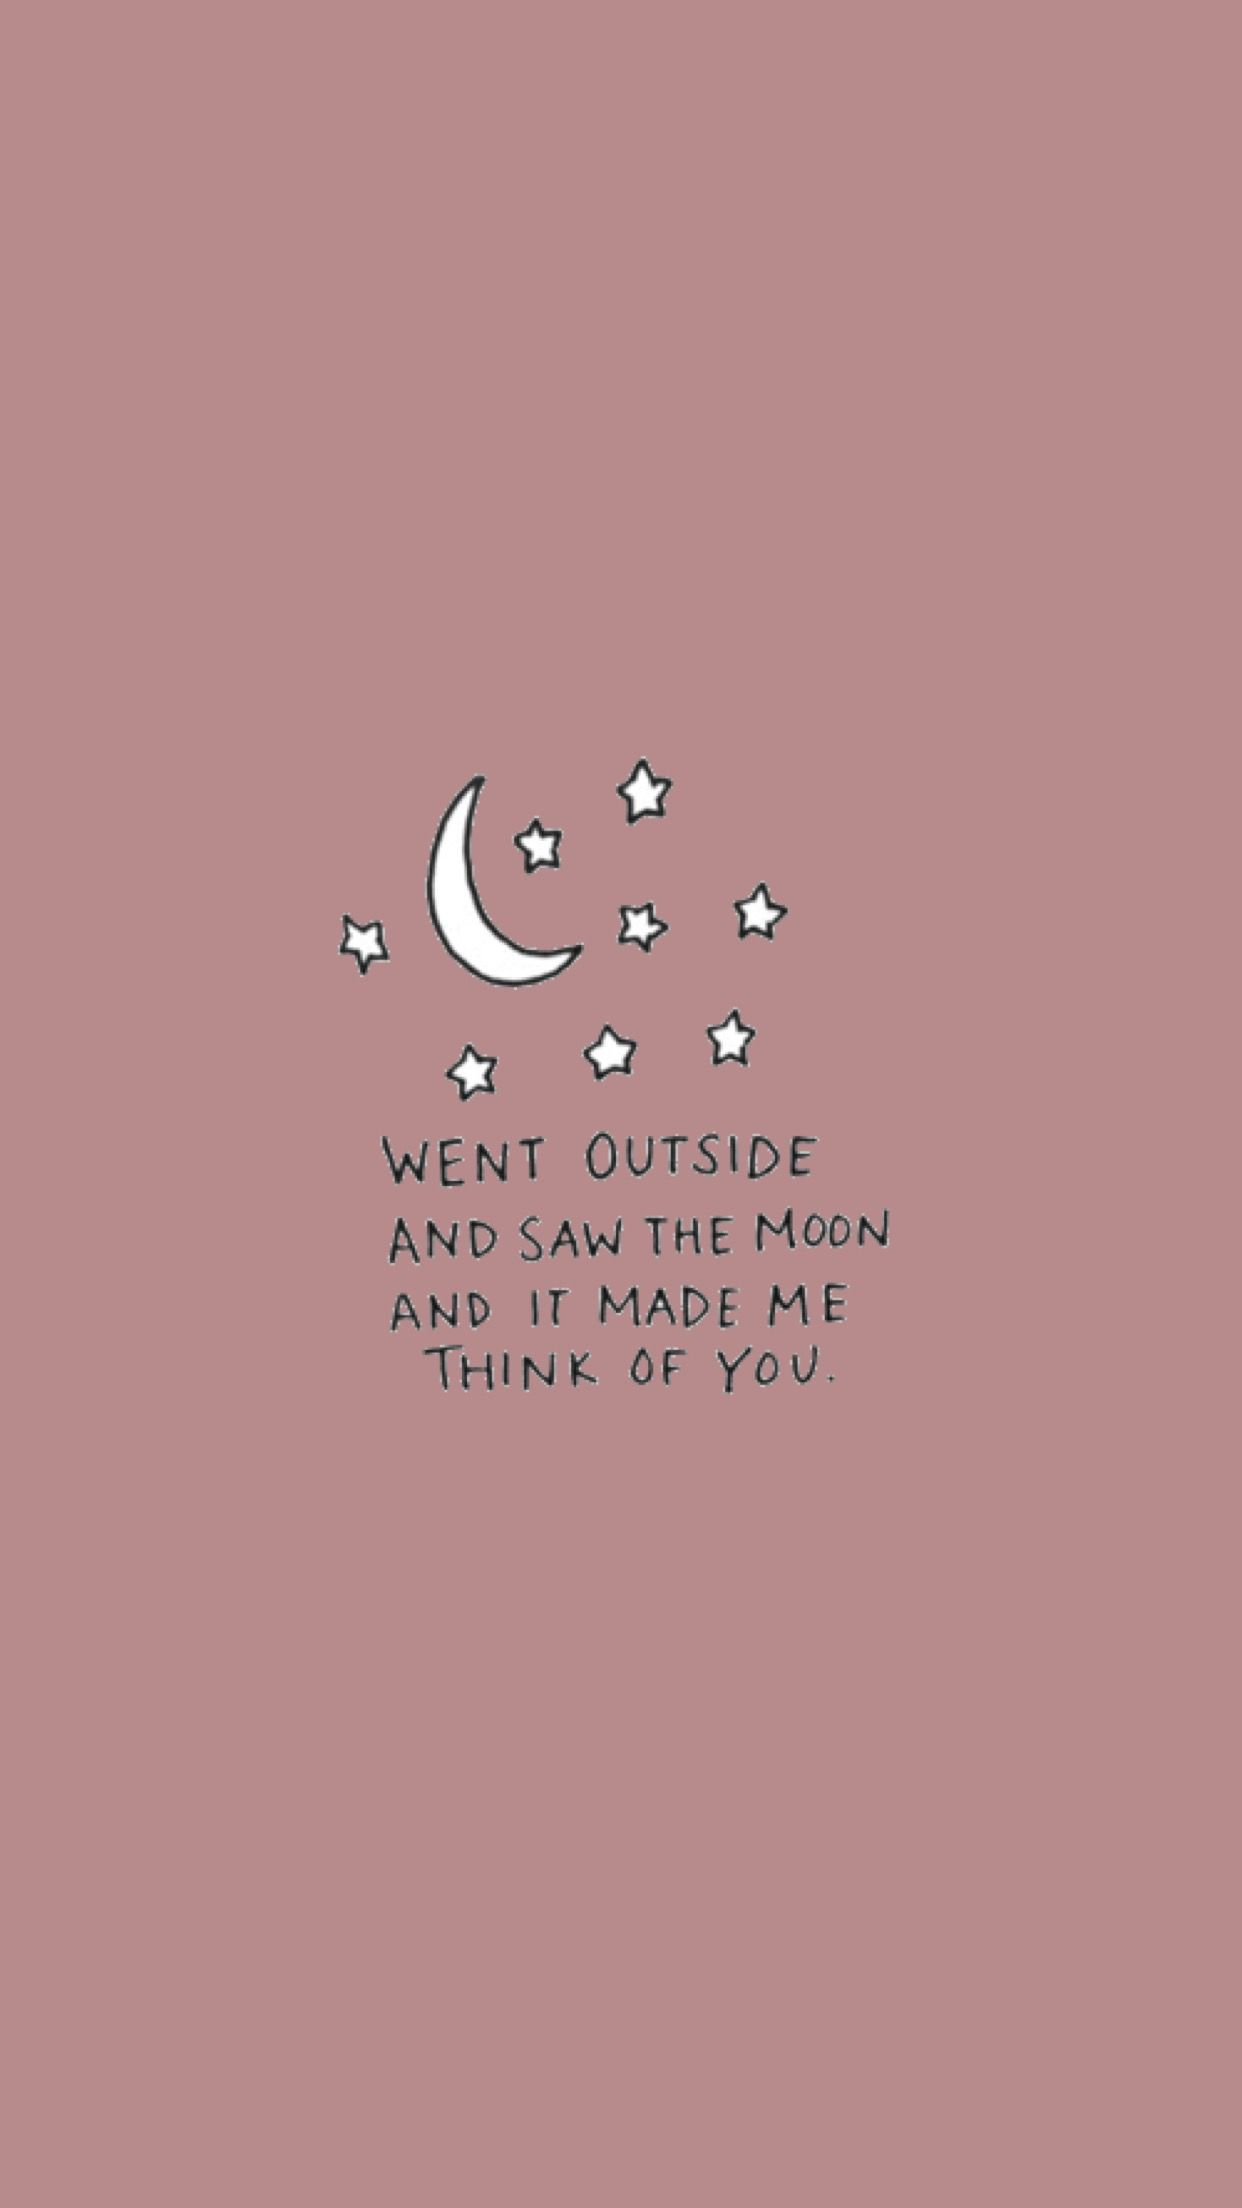 You-Moon wallpaper | made by Laurette | instagram:@laurette_evonen | Wallpapers | Cute quotes ...